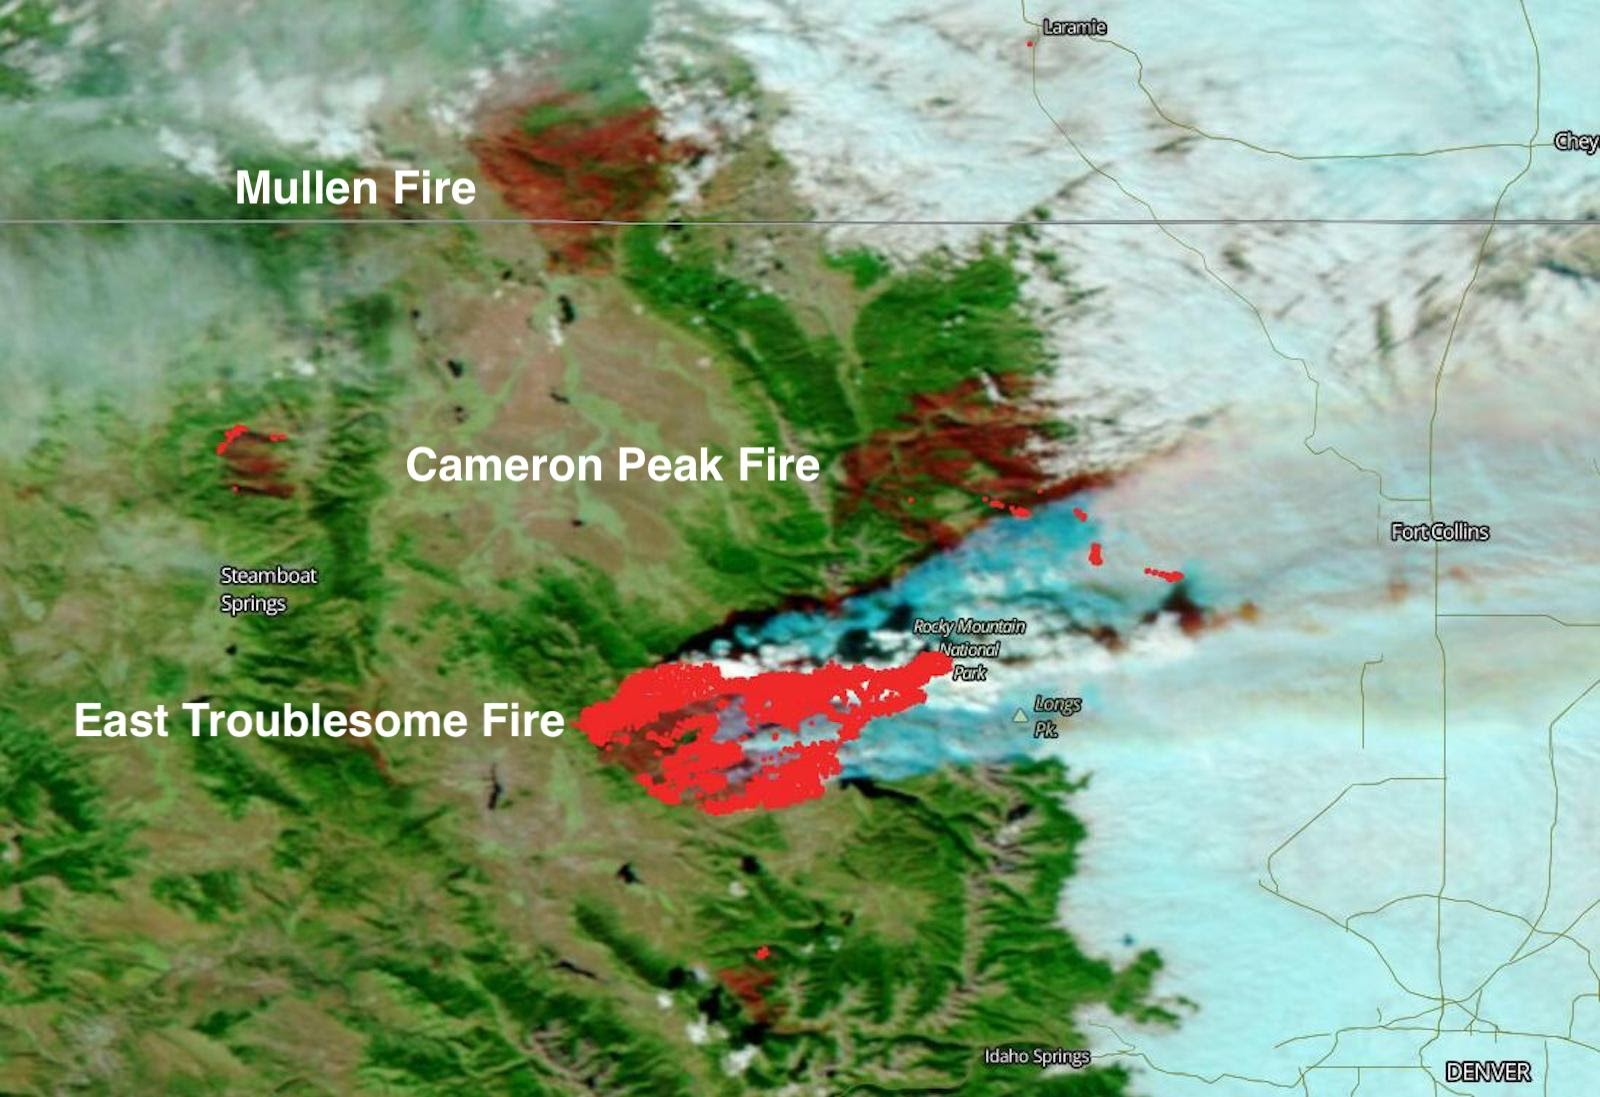 Colorado fire red annotated